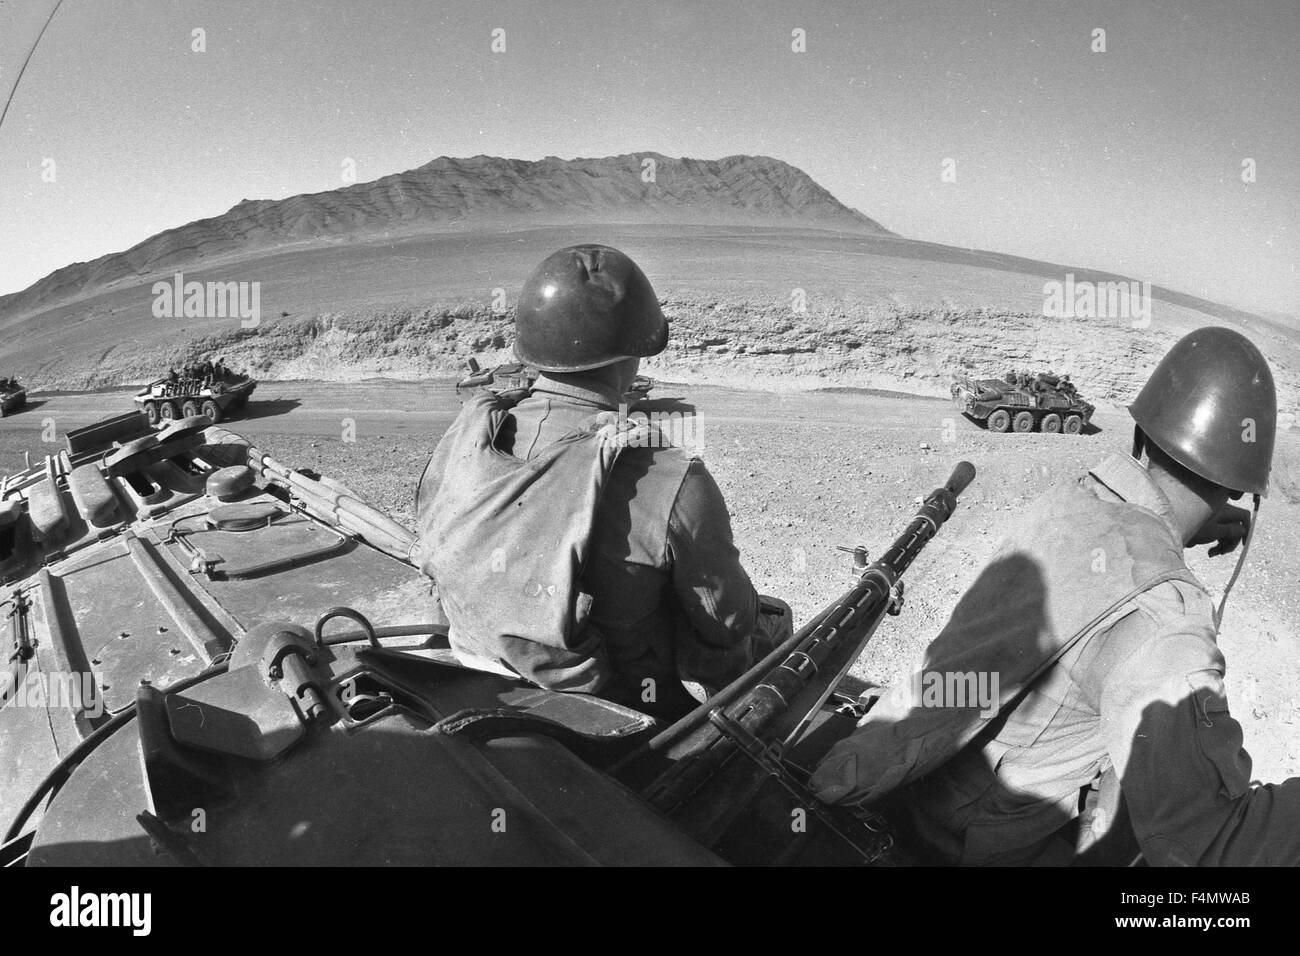 Soviet Afghanistan war - Page 6 Afghanistan-the-soviet-soldiers-near-kandahar-F4MWAB